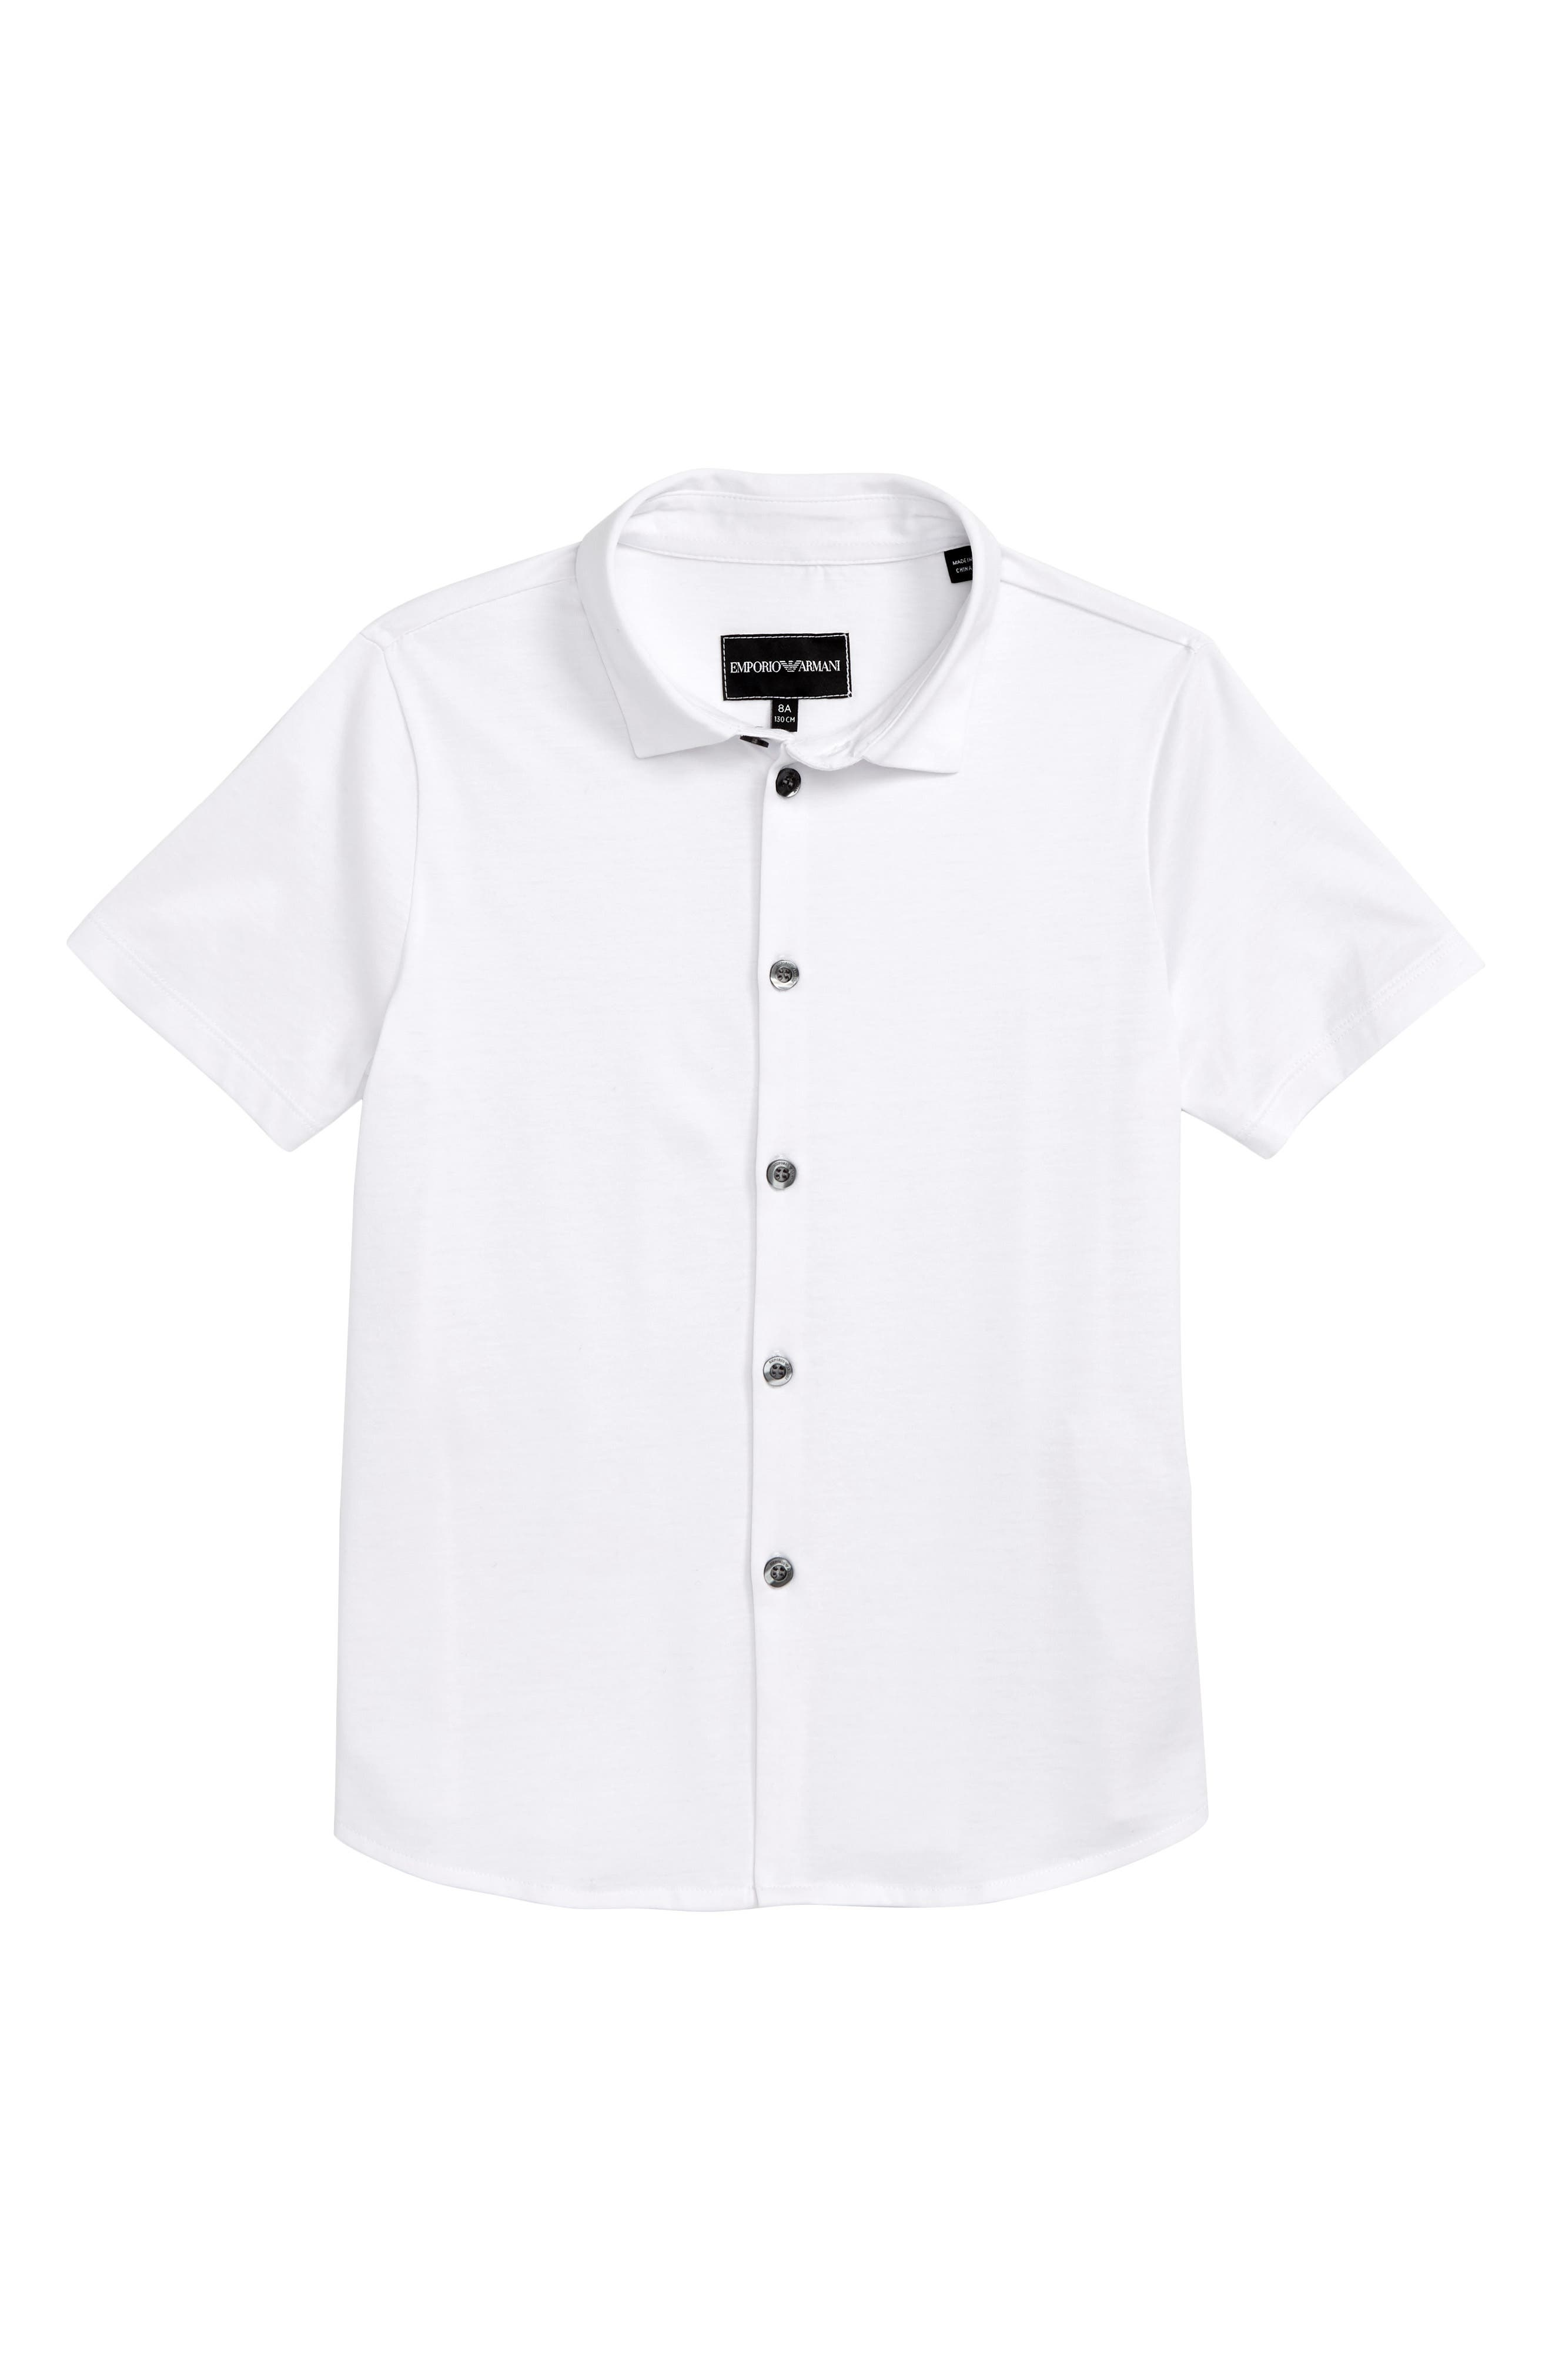 Short Sleeve Cotton Shirt,                         Main,                         color, SOLID WHITE